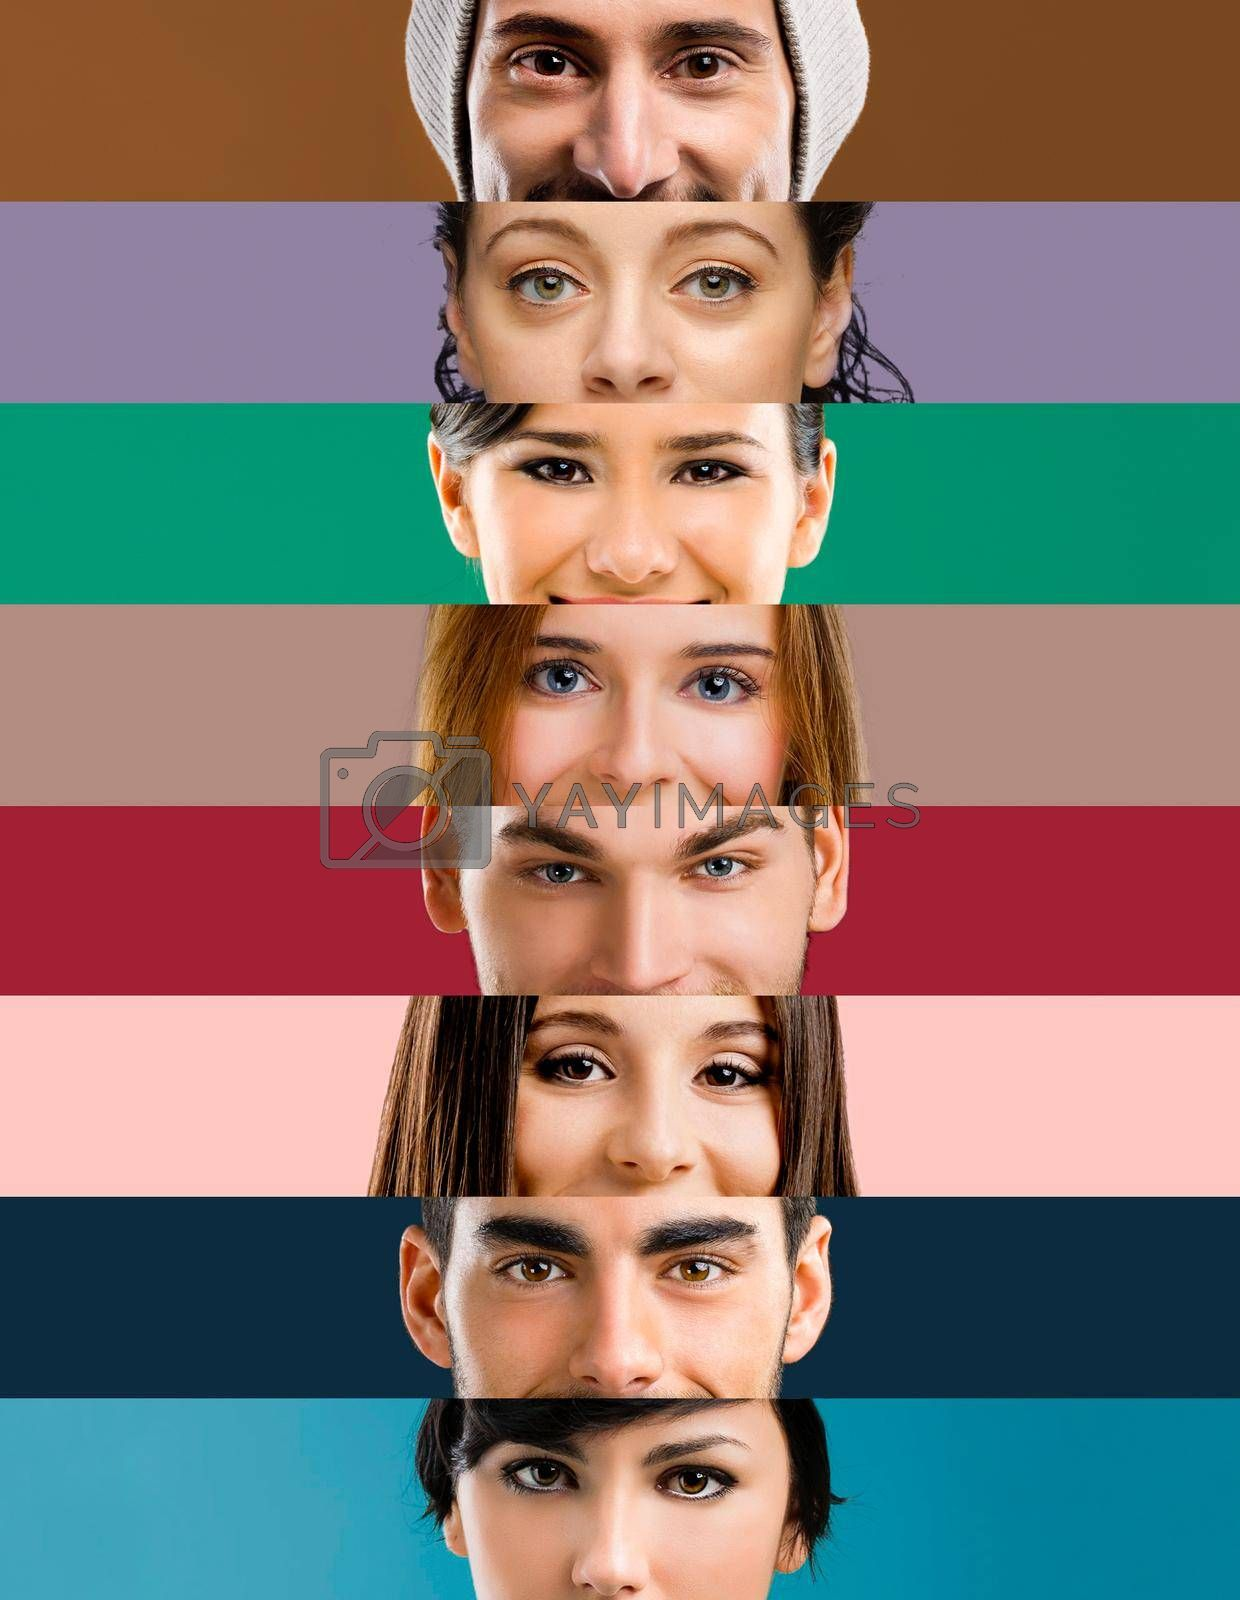 Royalty free image of Multiple portraits of women and men by Iko